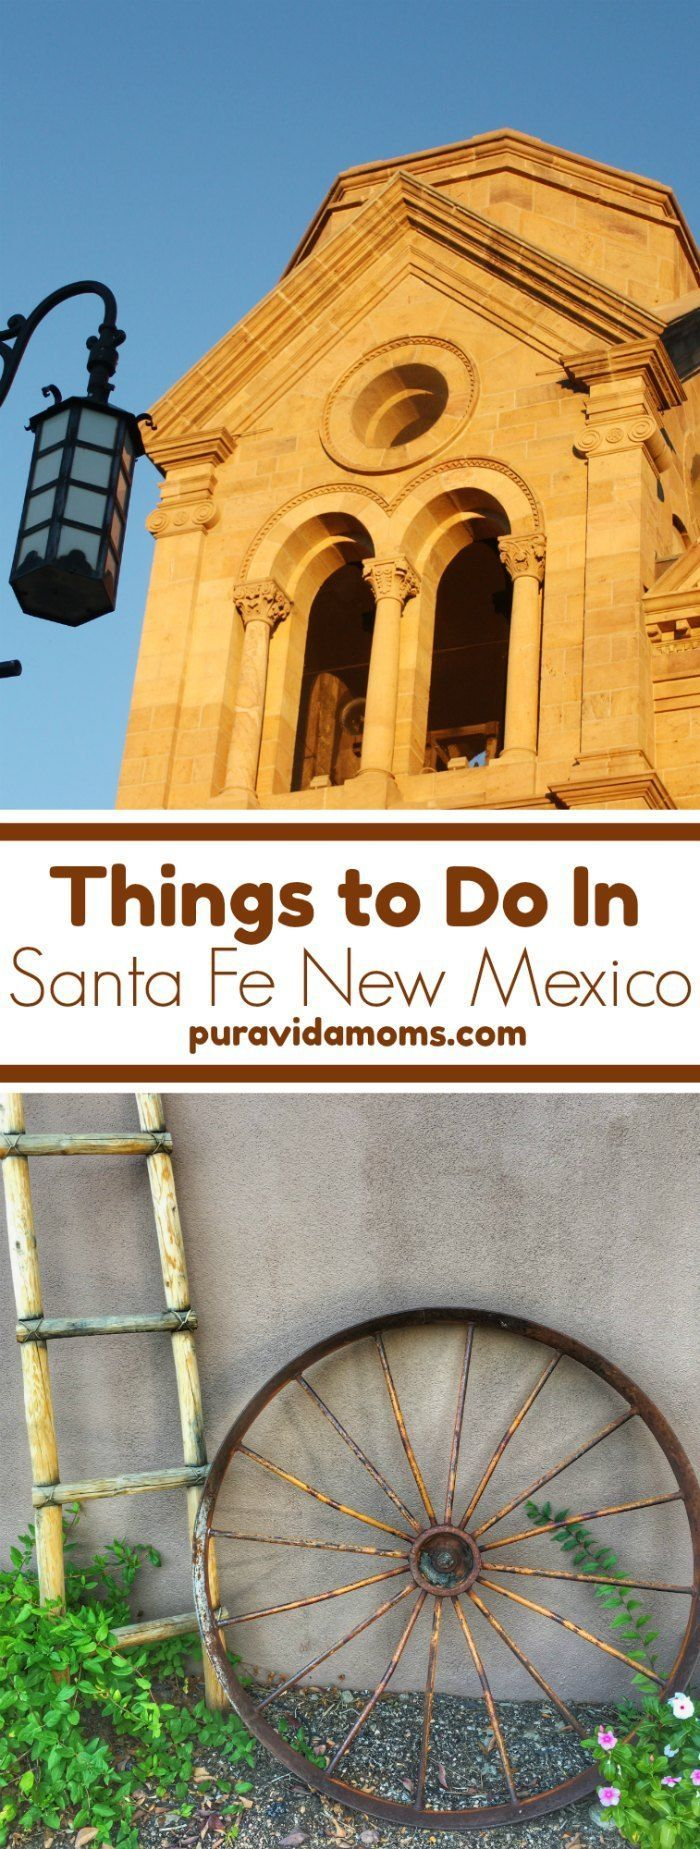 After 24 hours in Santa Fe we can't wait to go back- here's what I learned about things to do in Santa Fe. The ultimate guide to things to do in Santa Fe!